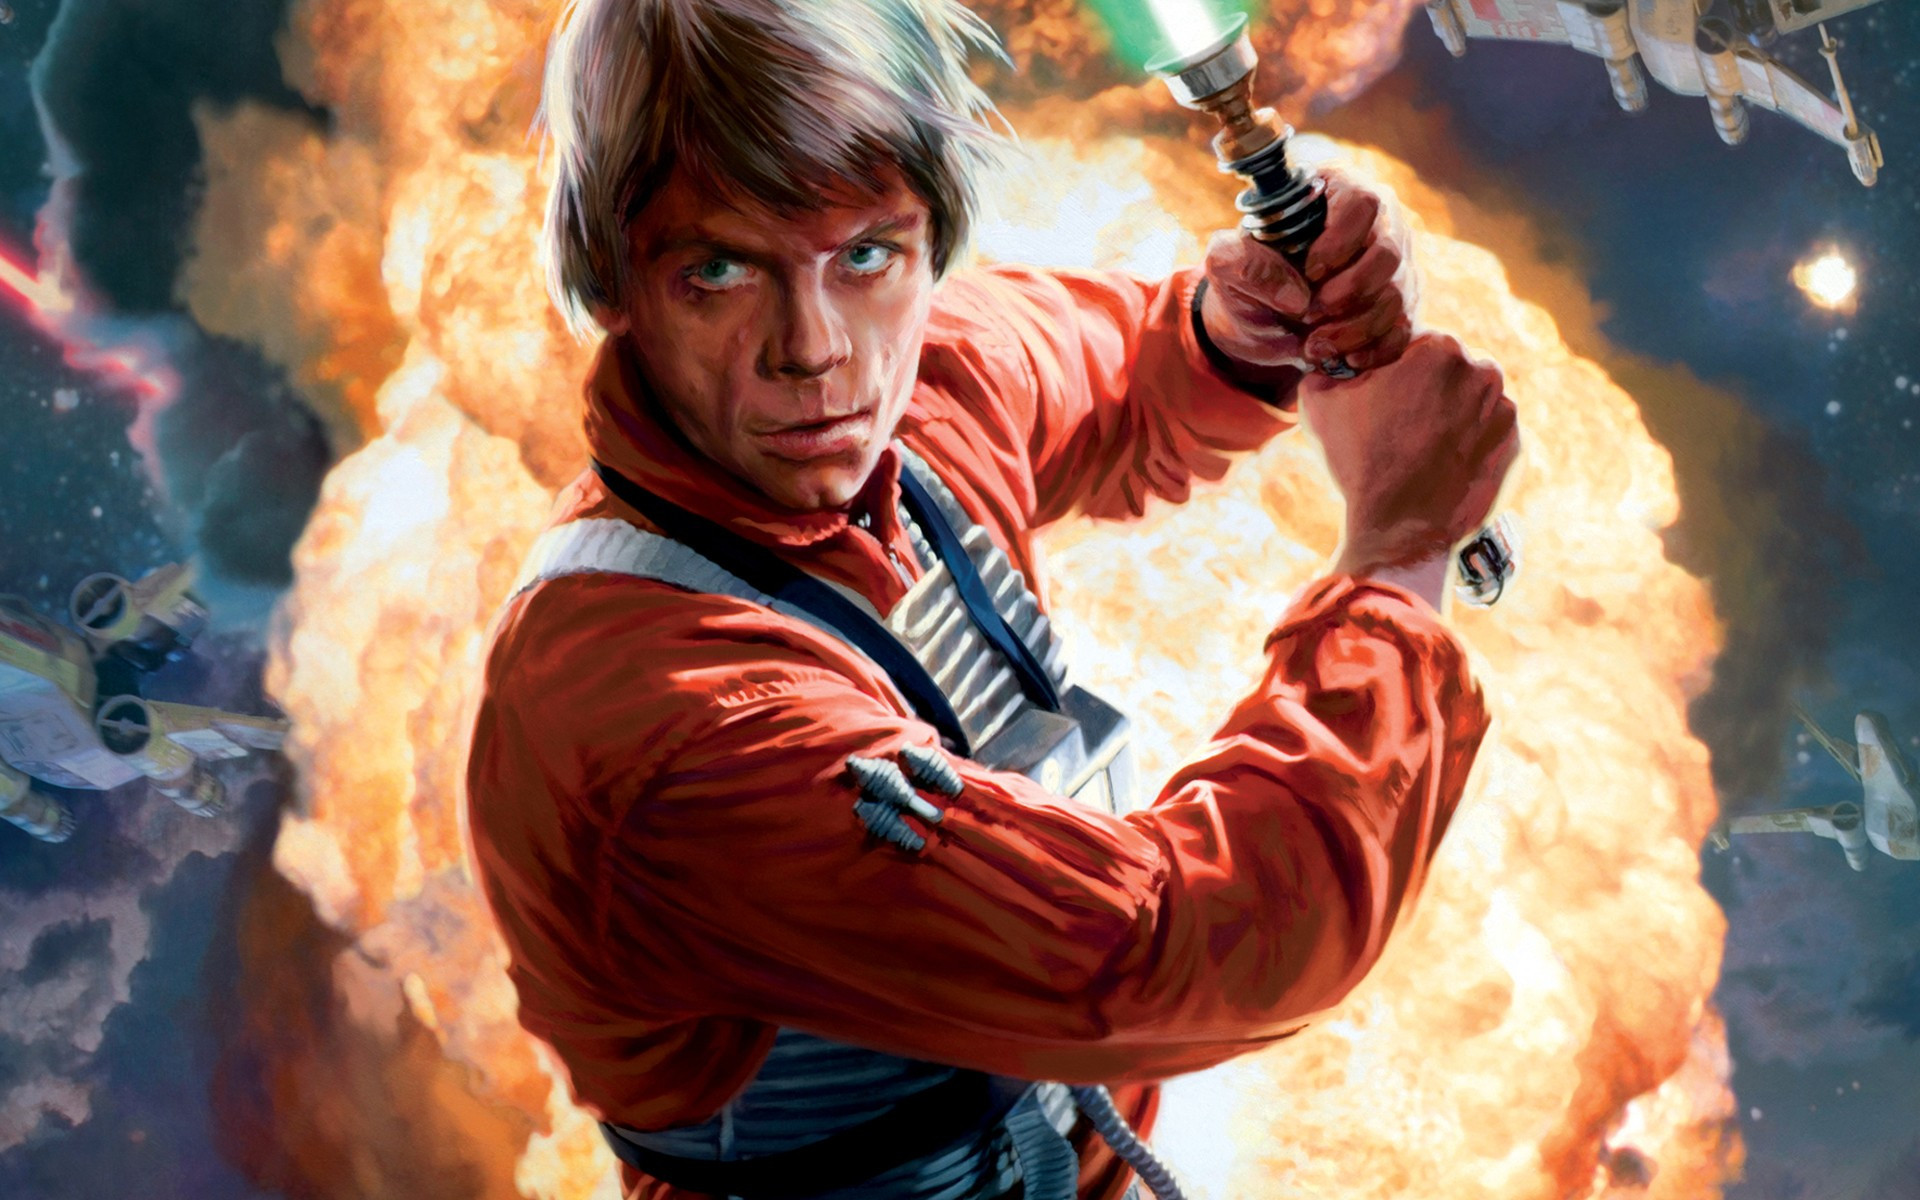 Star Wars Luke Skywalker Wallpaper 72 Images